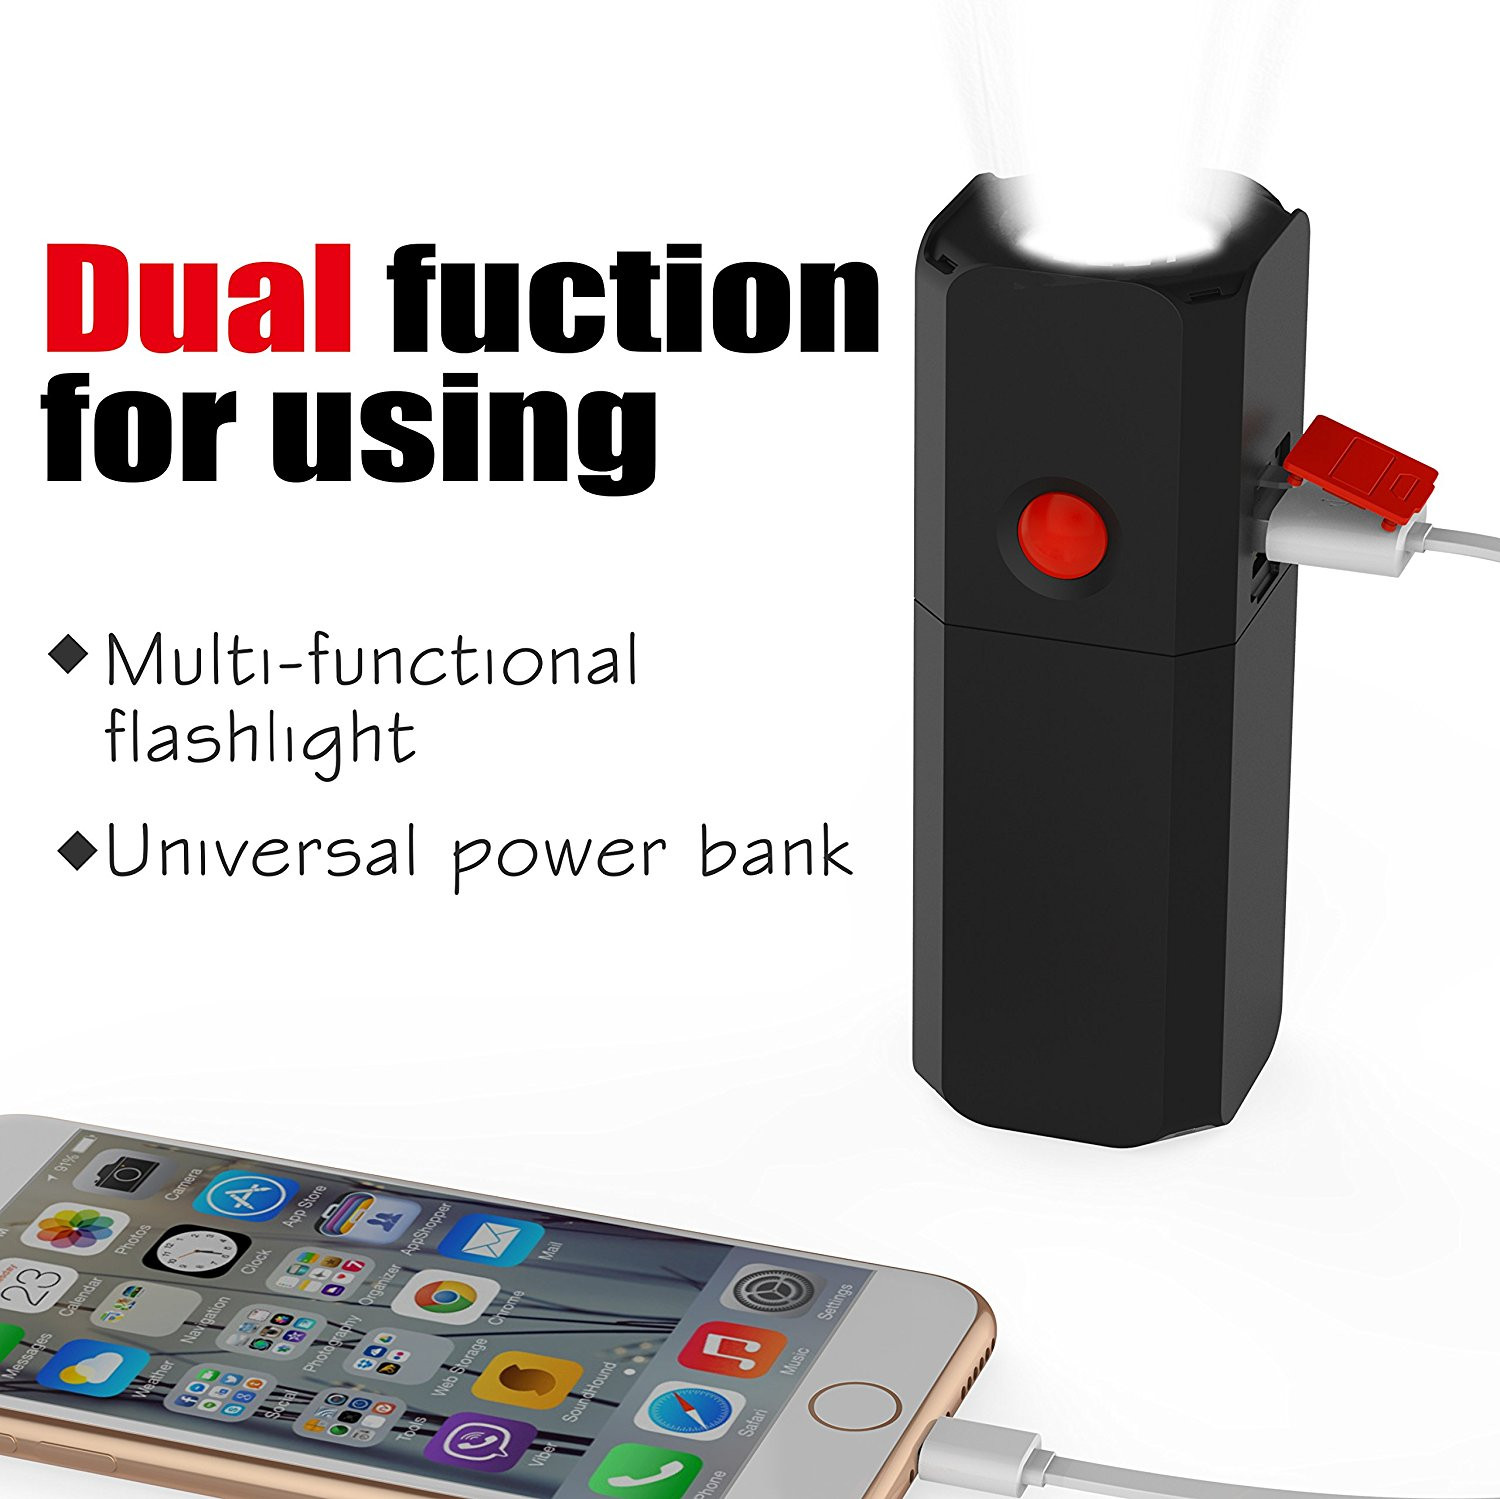 Tuya 2 in 1 10400mAh Power Bank for Phone and Dimming Mini USB LED Flashlight for Reading Outdoor